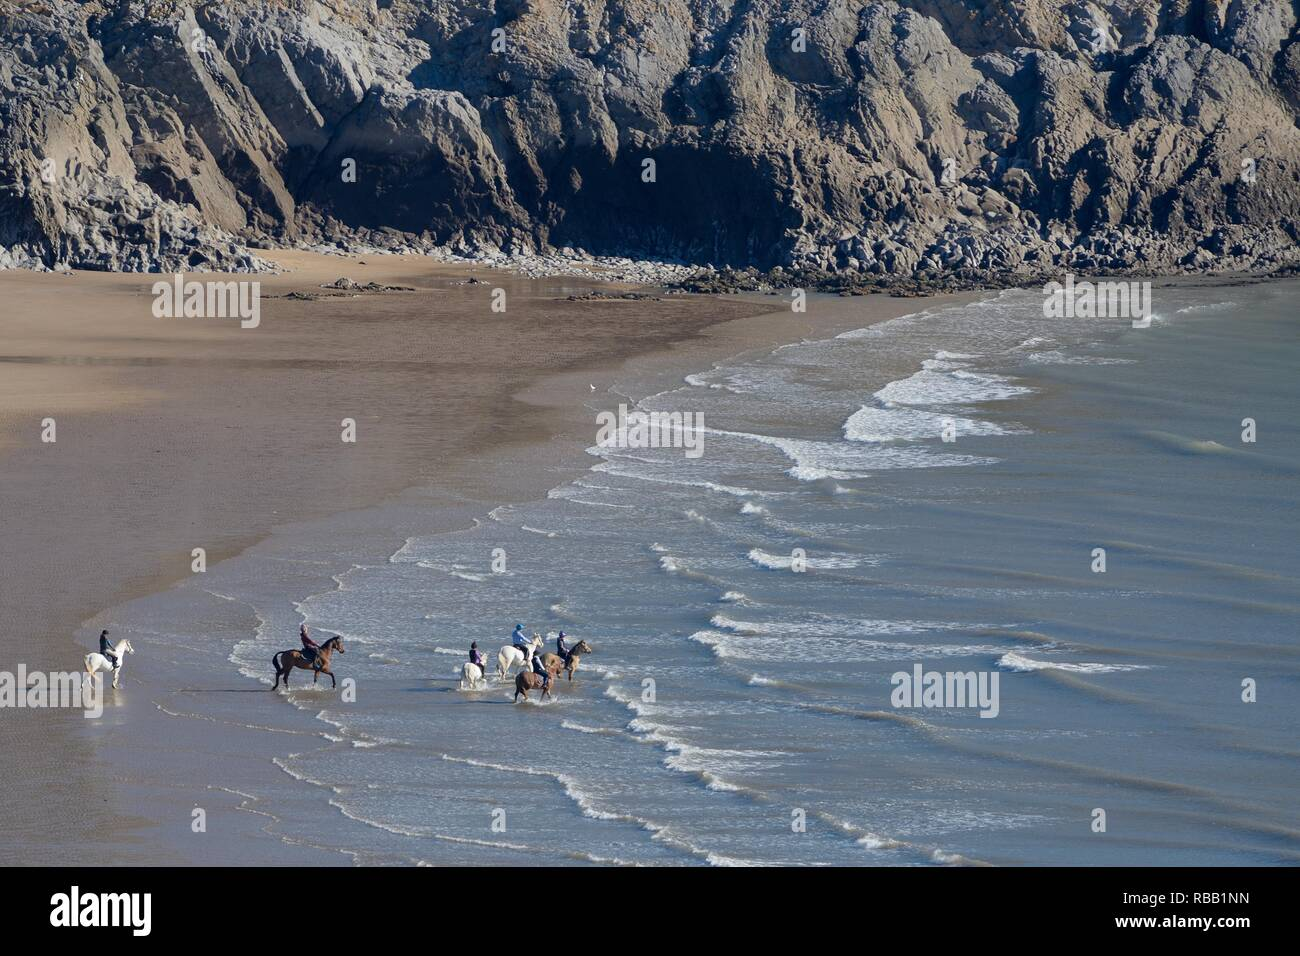 Overview of a group of Horses (Equus caballus) being ridden into shallow sea water lapping a beach at low tide, Three Cliffs Bay, The Gower, Wales, UK - Stock Image